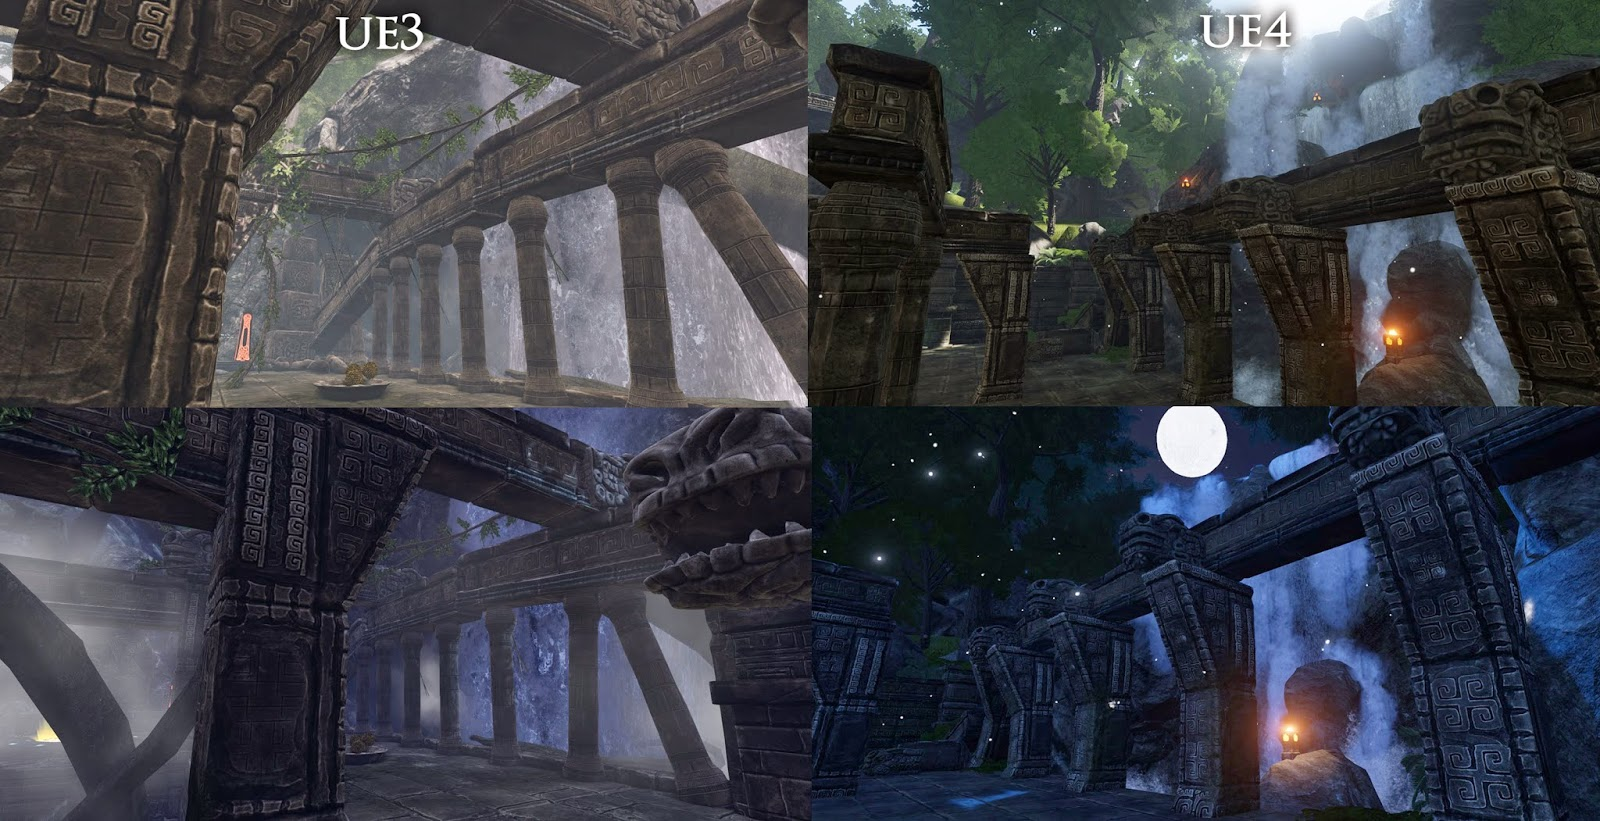 Xing Development: We made the switch to Unreal Engine 4!!